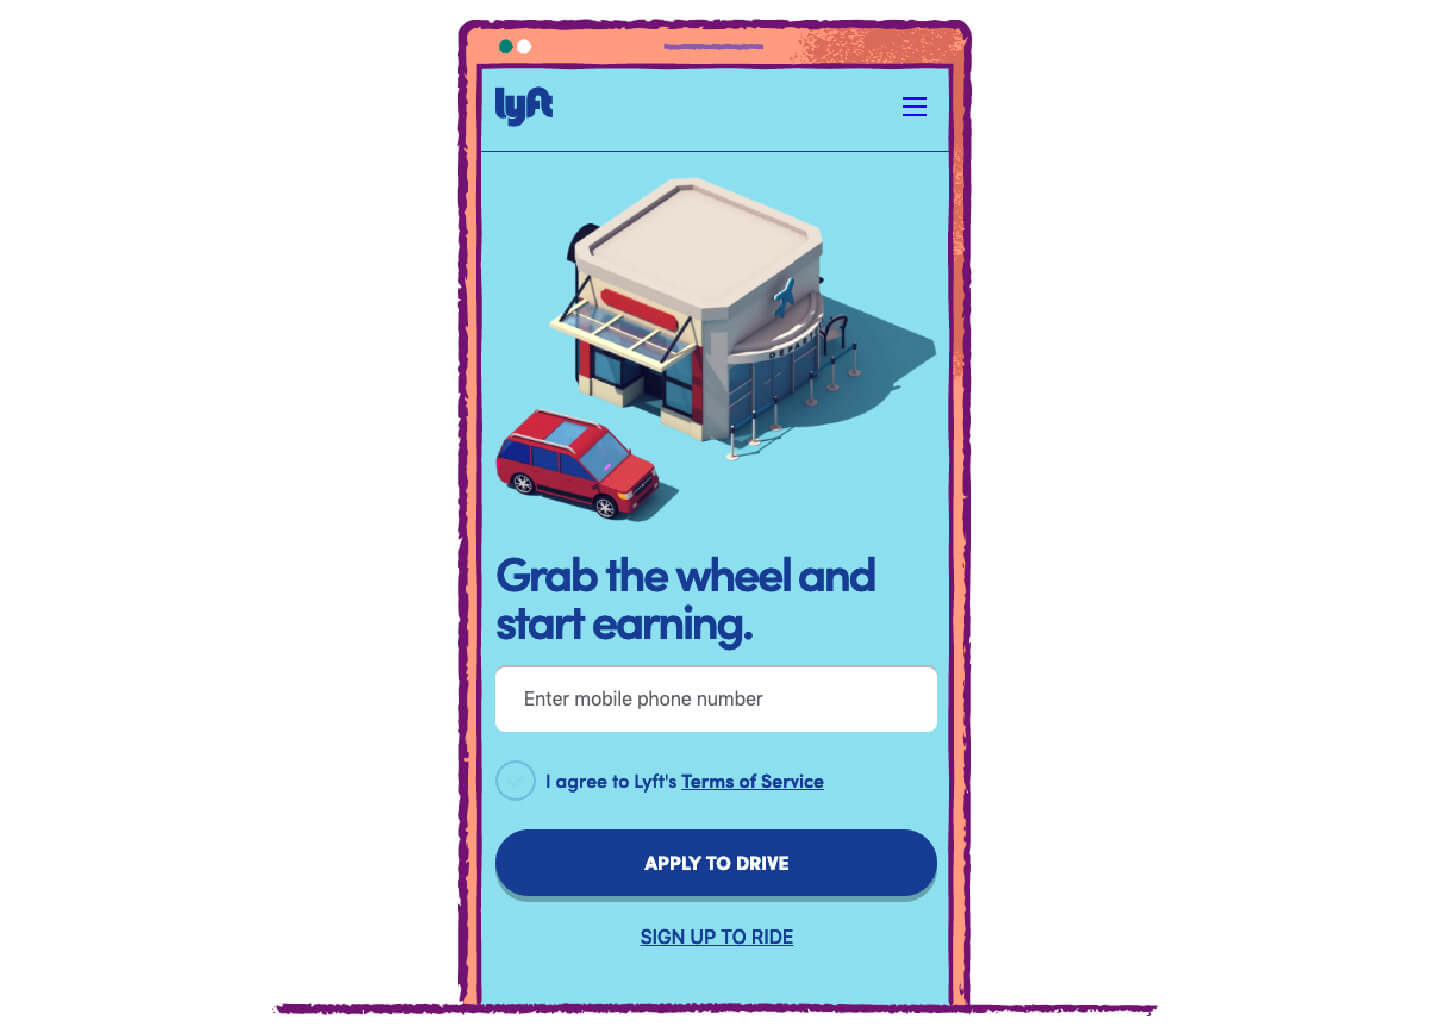 call to action button examples from lyft to either sign up to drive or sign up to ride